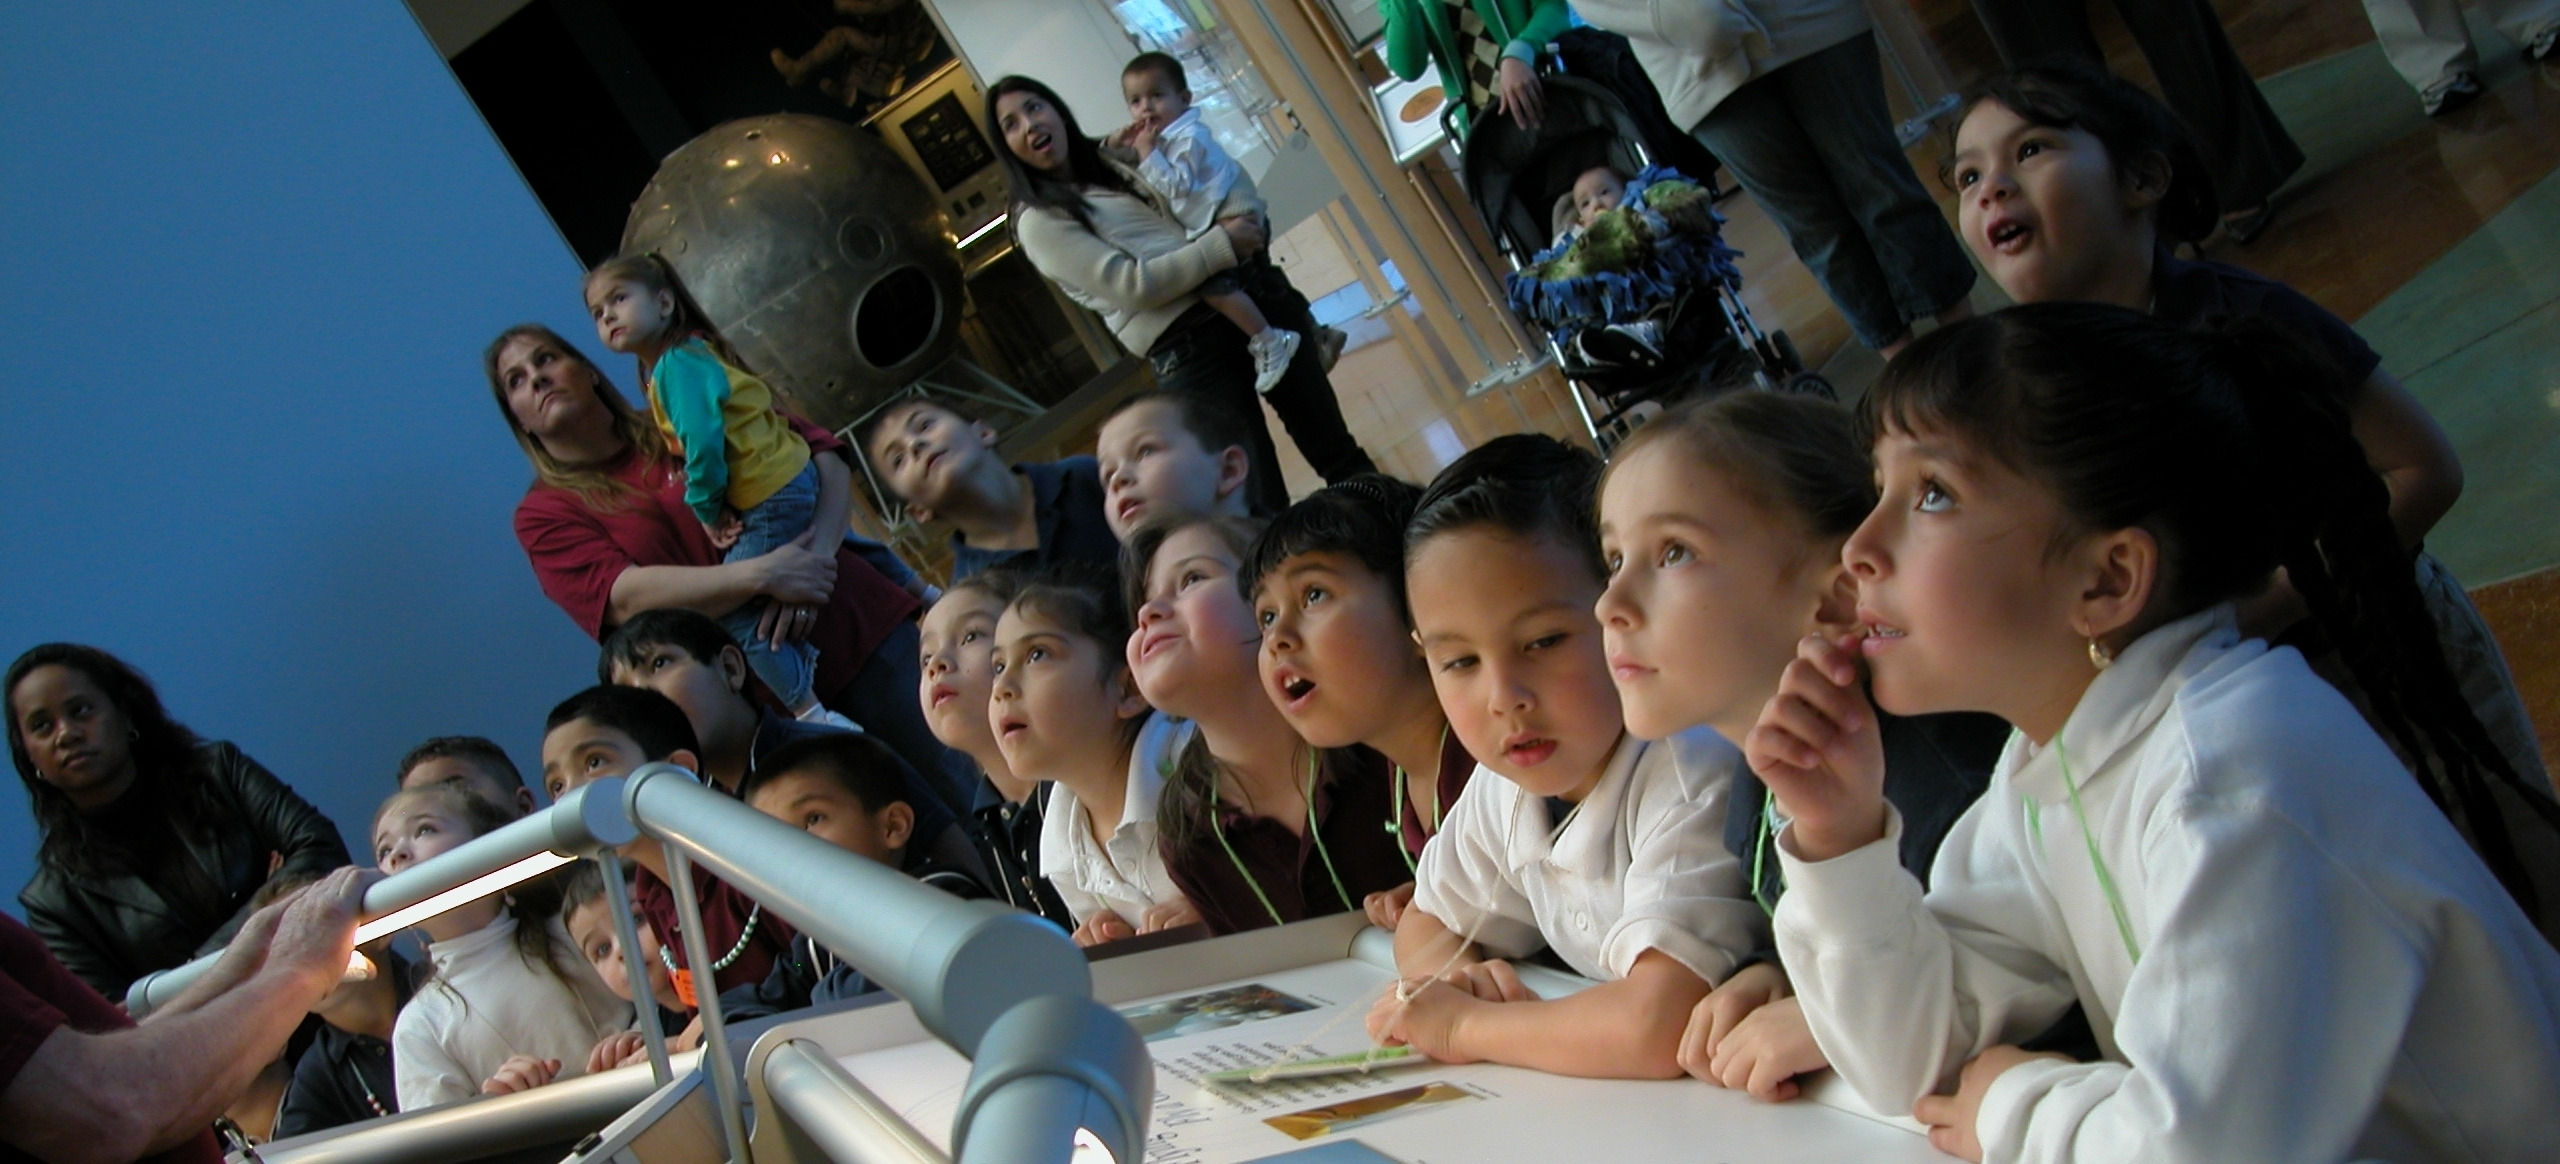 A photo of a group of students at the Balloon Museum.